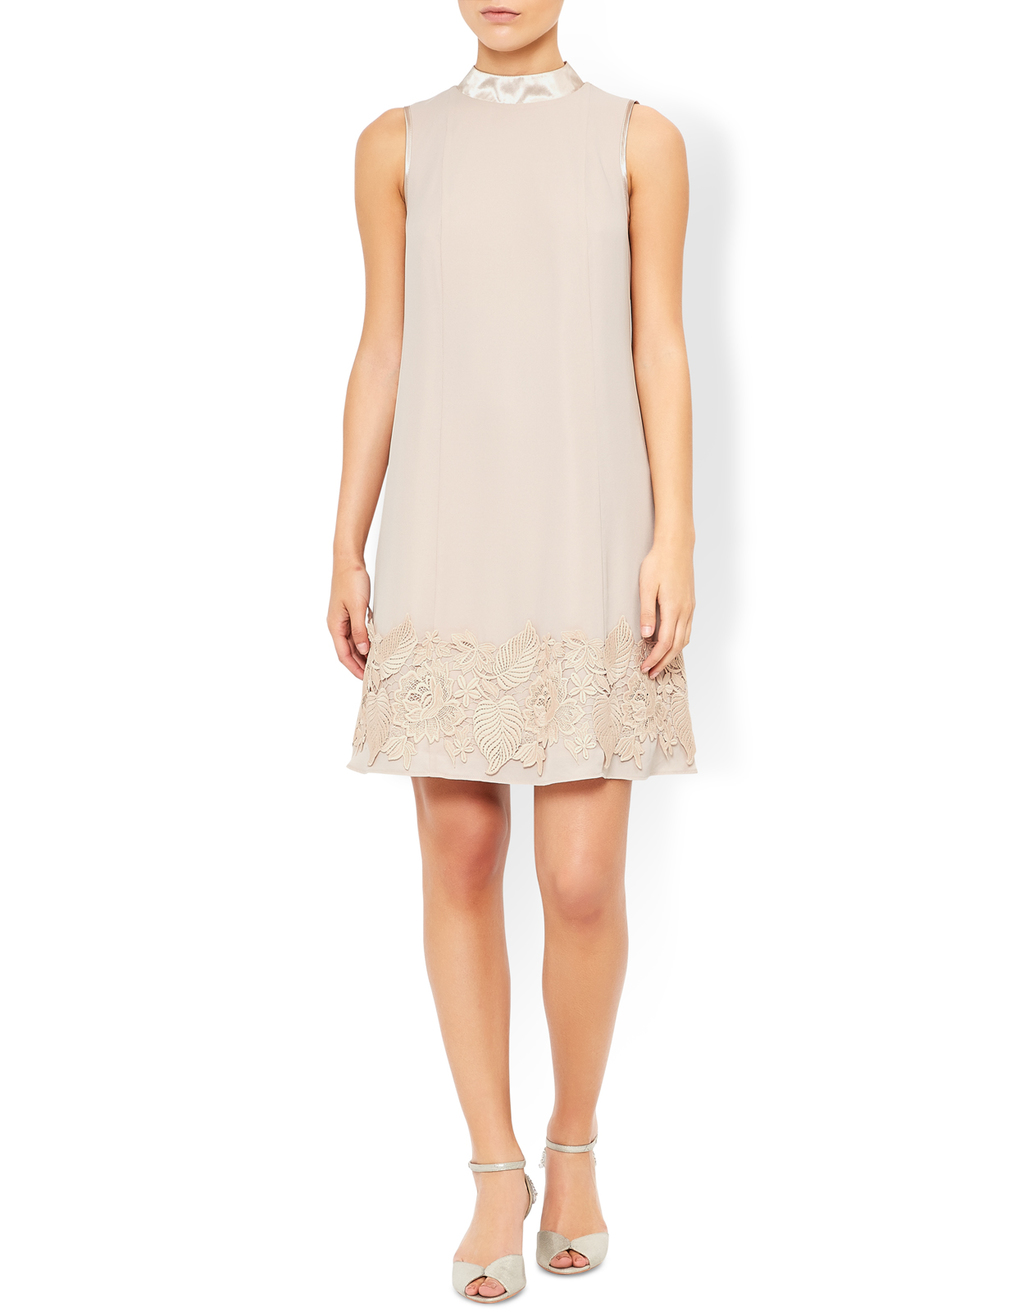 Dorri Lace Dress - style: trapeze; length: mid thigh; pattern: plain; sleeve style: sleeveless; neckline: high neck; predominant colour: nude; occasions: evening, occasion; fit: soft a-line; fibres: polyester/polyamide - 100%; hip detail: added detail/embellishment at hip; sleeve length: sleeveless; texture group: crepes; pattern type: fabric; embellishment: lace; season: a/w 2016